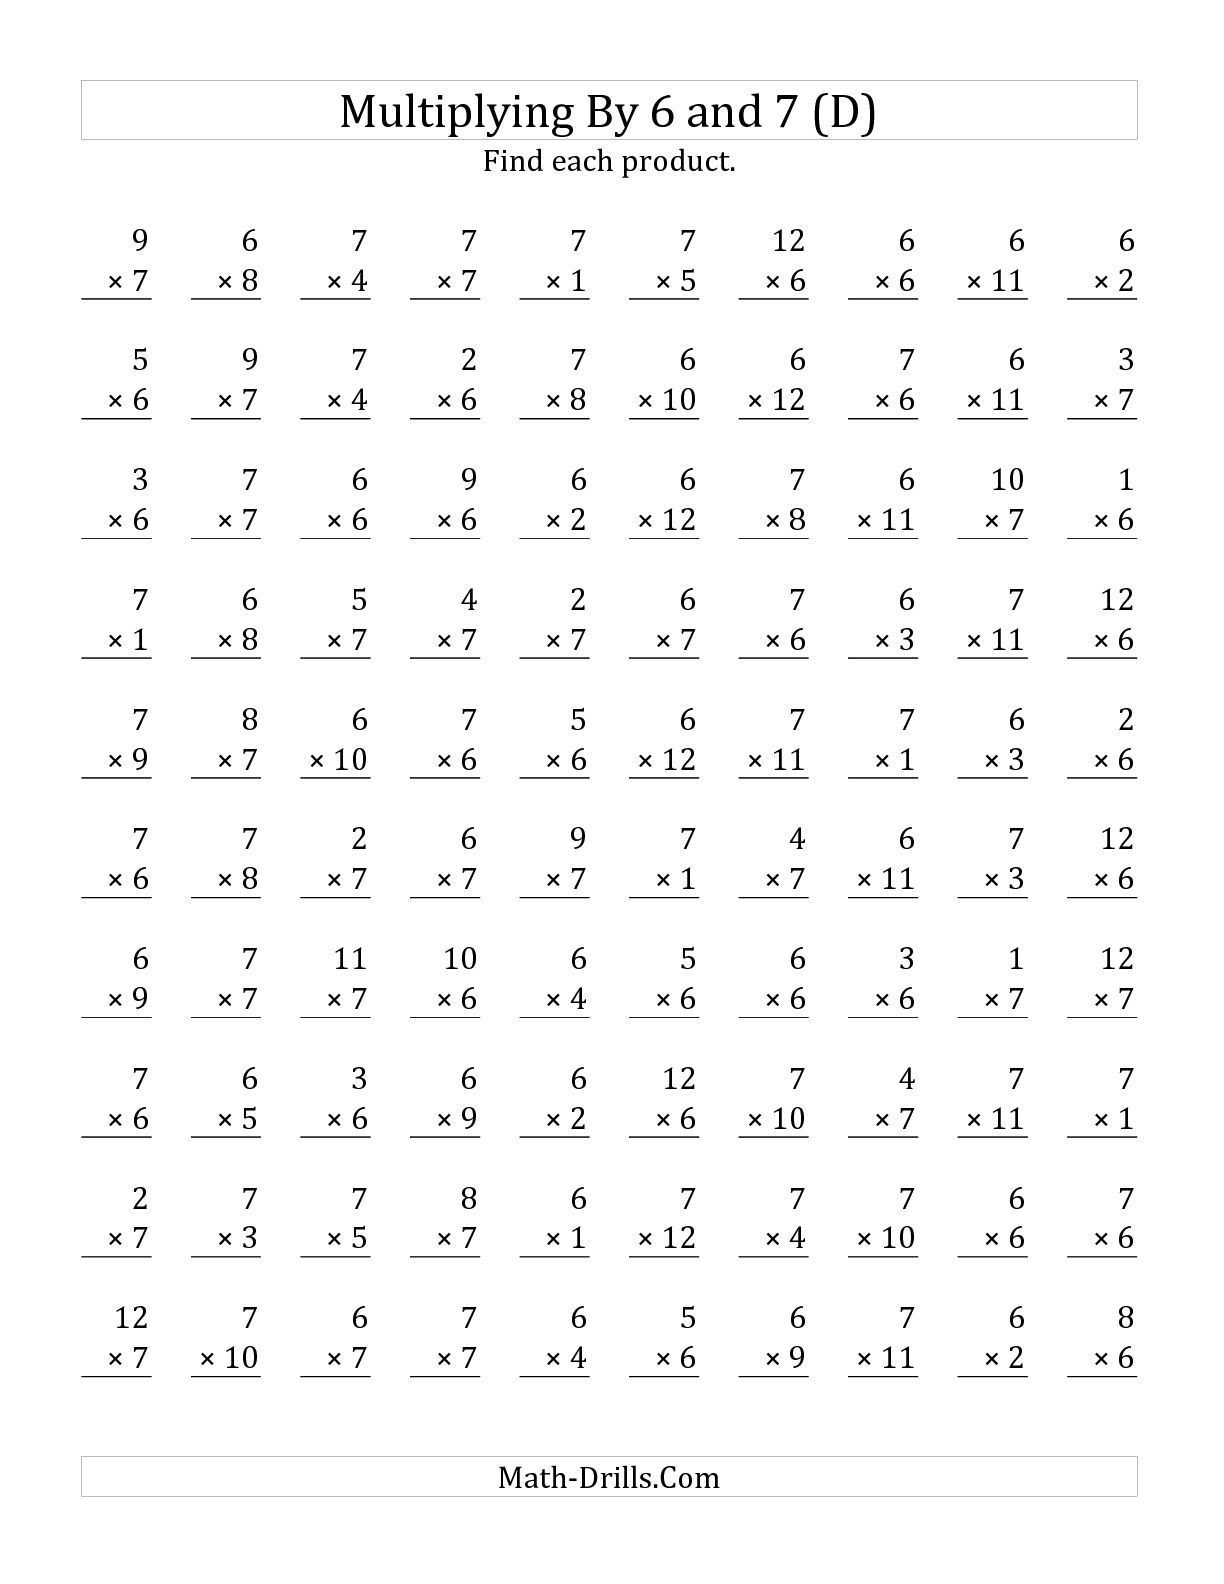 The Multiplying 1 To 12 By 6 And 7 D